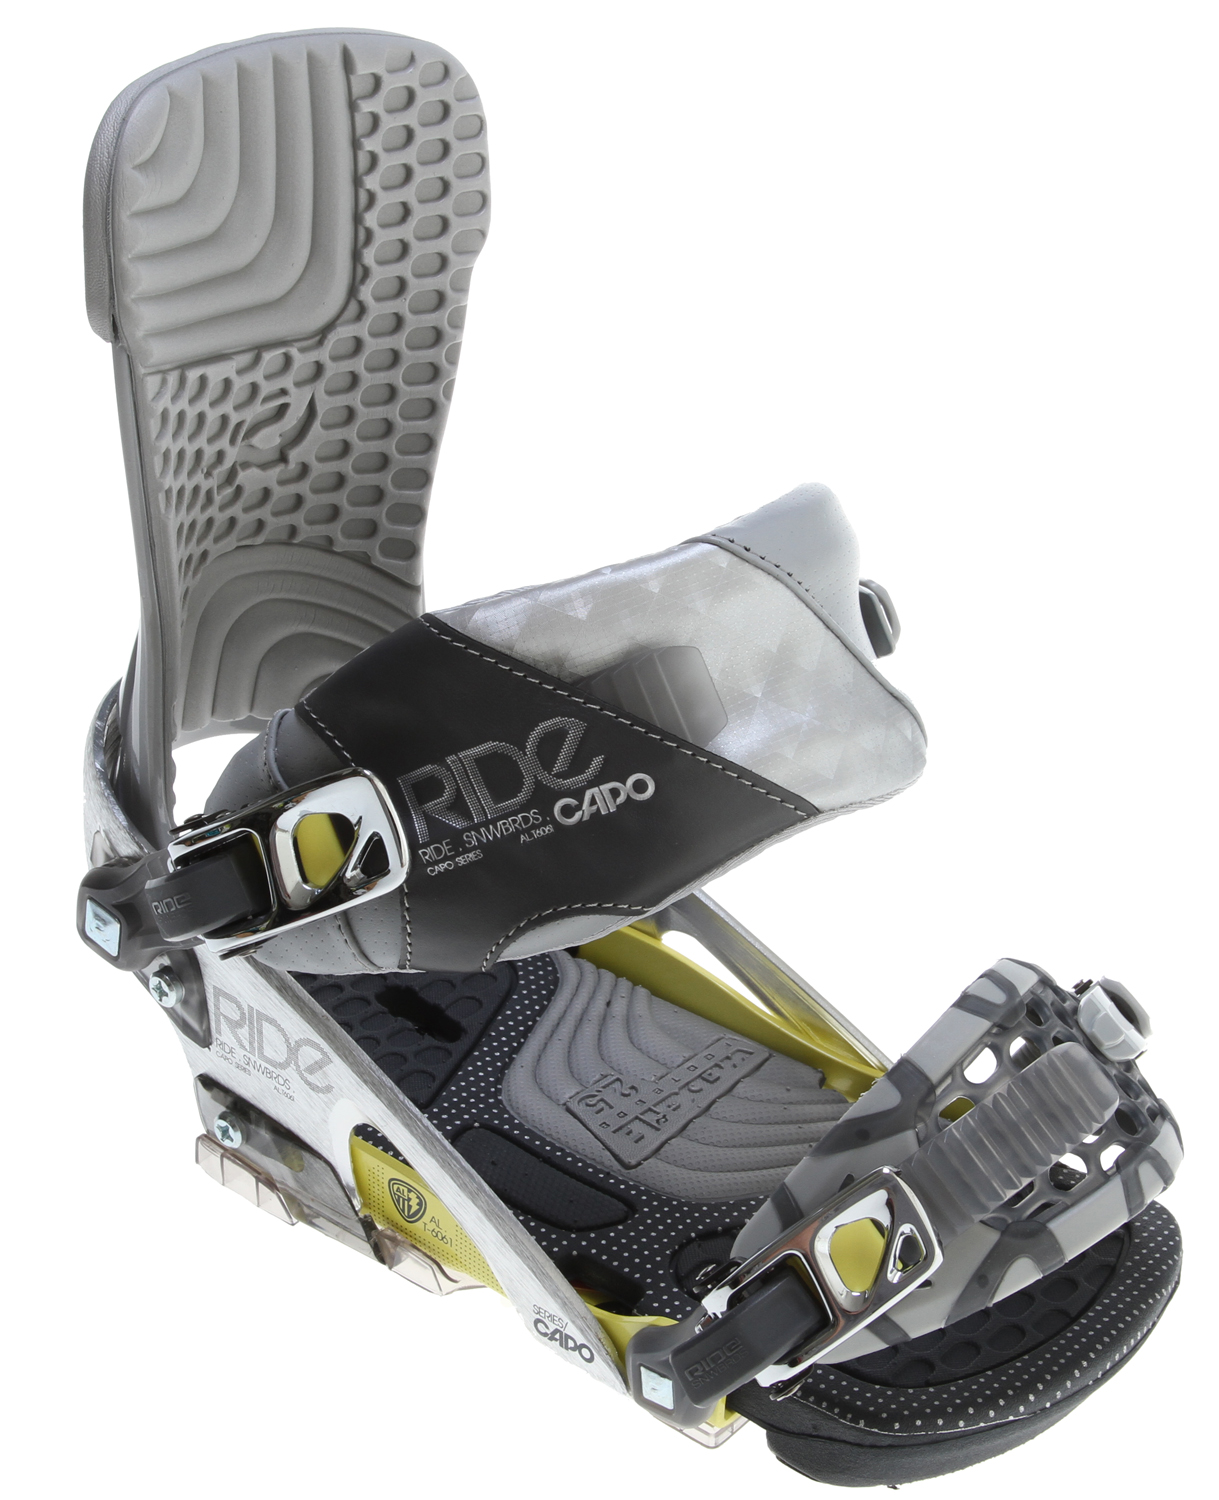 Snowboard The Capo is packed with the latest techs including the Freestyle ankle strap, Infinity chassis, new AstroGlyde LT ratchets and Eclipse highback for top of the line all mountain freestyle performance. Offering mid-level support and optimal flex, along with the pop enhancing Wedgie 2.5 footbeds and grippy 3D ThinGrip toe strap for the adventurous next generation Rider. Key Features of the Ride Capo Snowboard Bindings: Flex 7 Infinity Chassis System w/ Adjustable Heelcup Eclipse Highback Wedgie 2.5 Footbed Urethane Rollbar Basepad Freestyle Ankle Strap 3D ThinGrip Toe Strap NEW! FlipSide Mount Strap NEW! AstroGlyde LT Ratchets Forged Aluminum Micro-Disc - $188.95